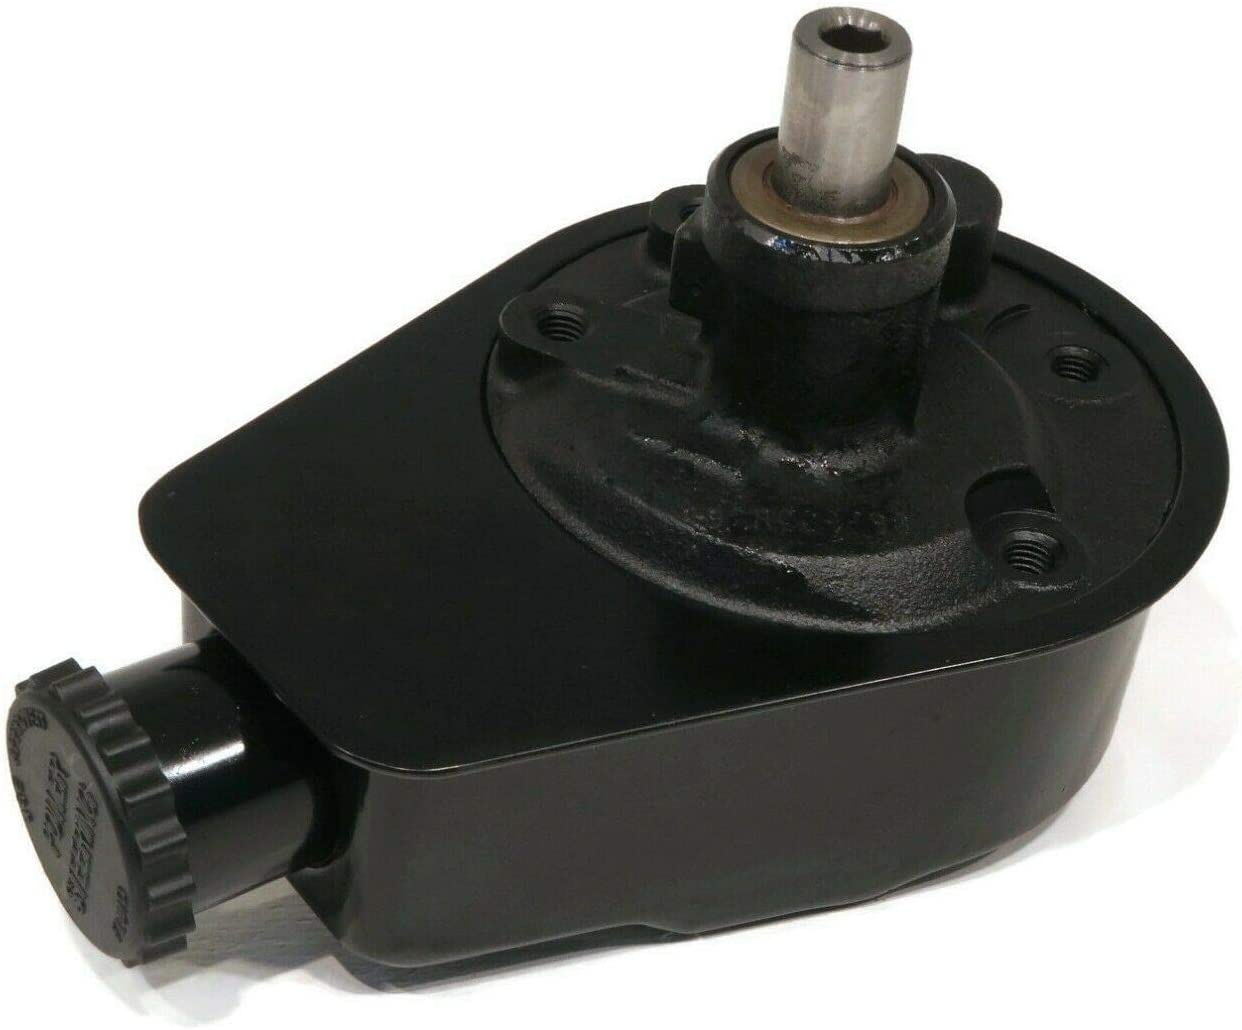 Power Steering Pump for 1992 Mercruiser TRS TR 425 II Don't miss the campaign sold out